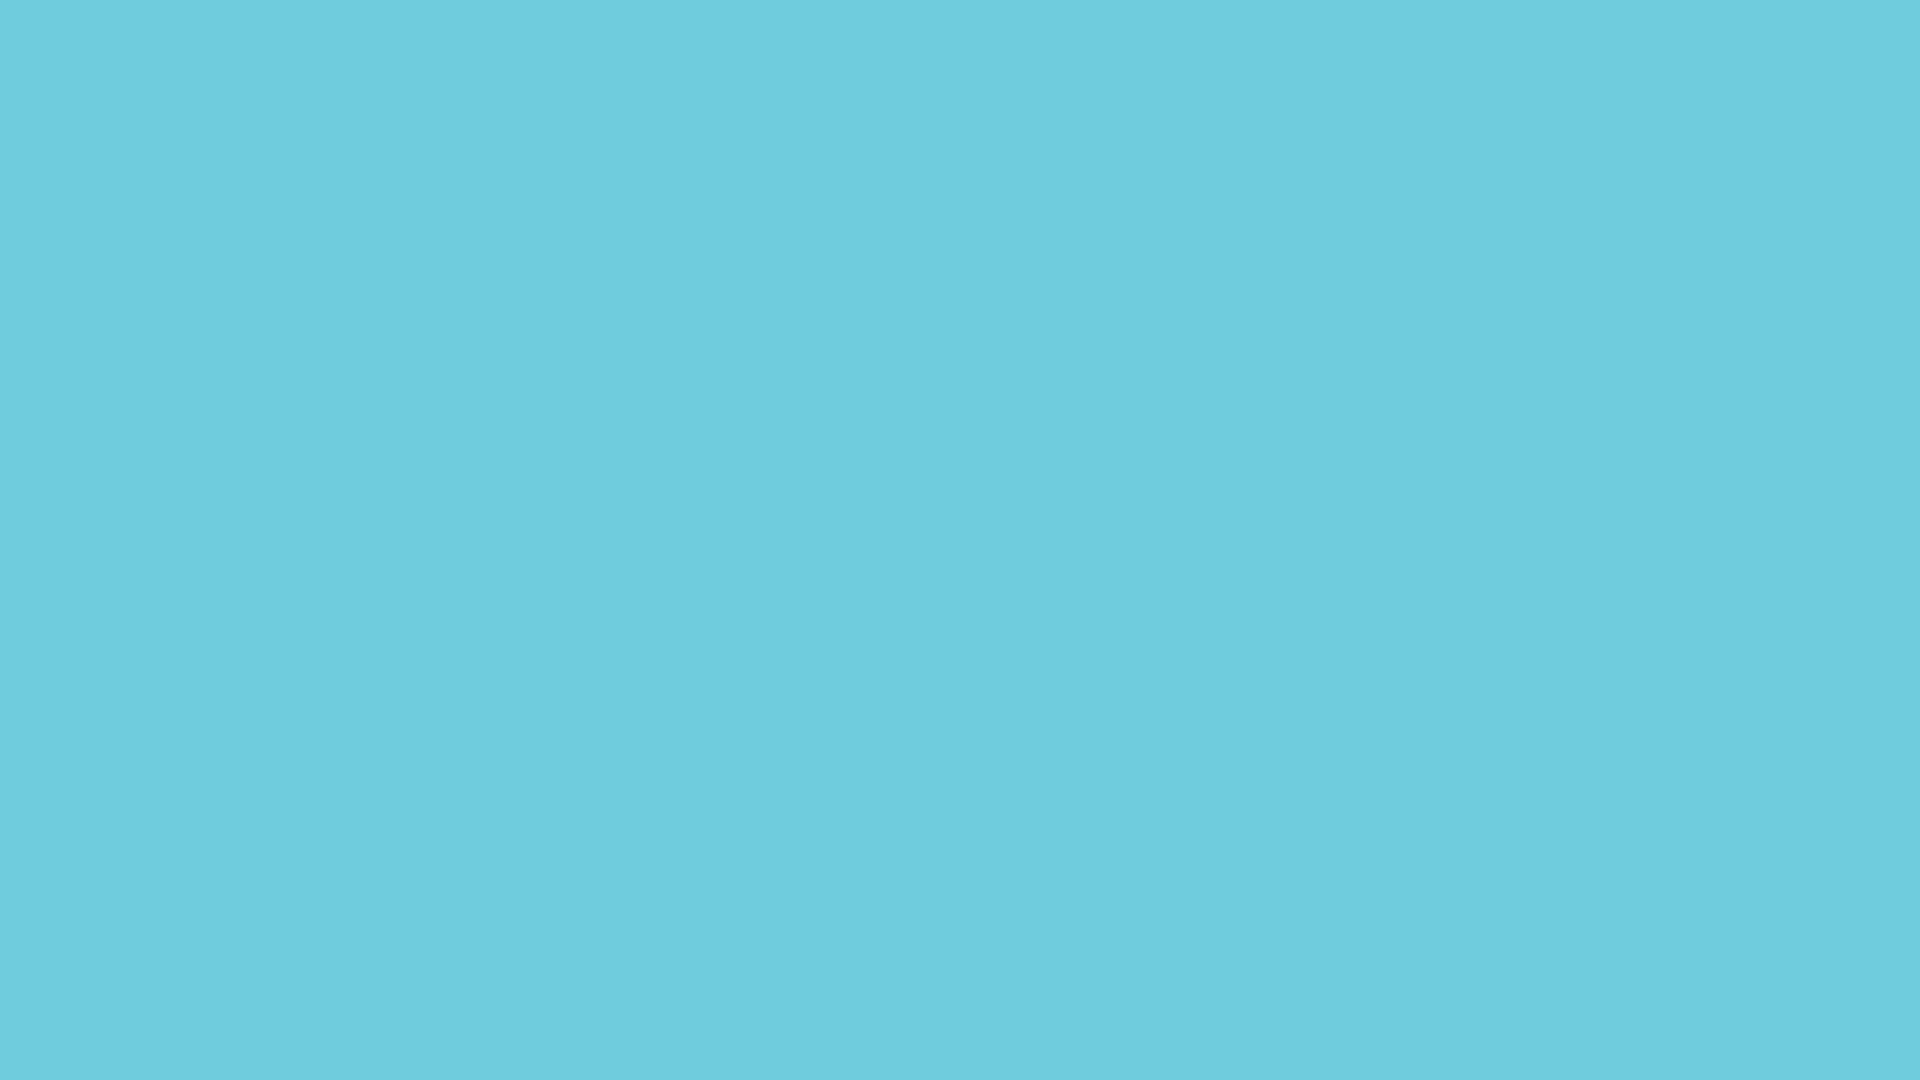 Cyan Solid Color Background